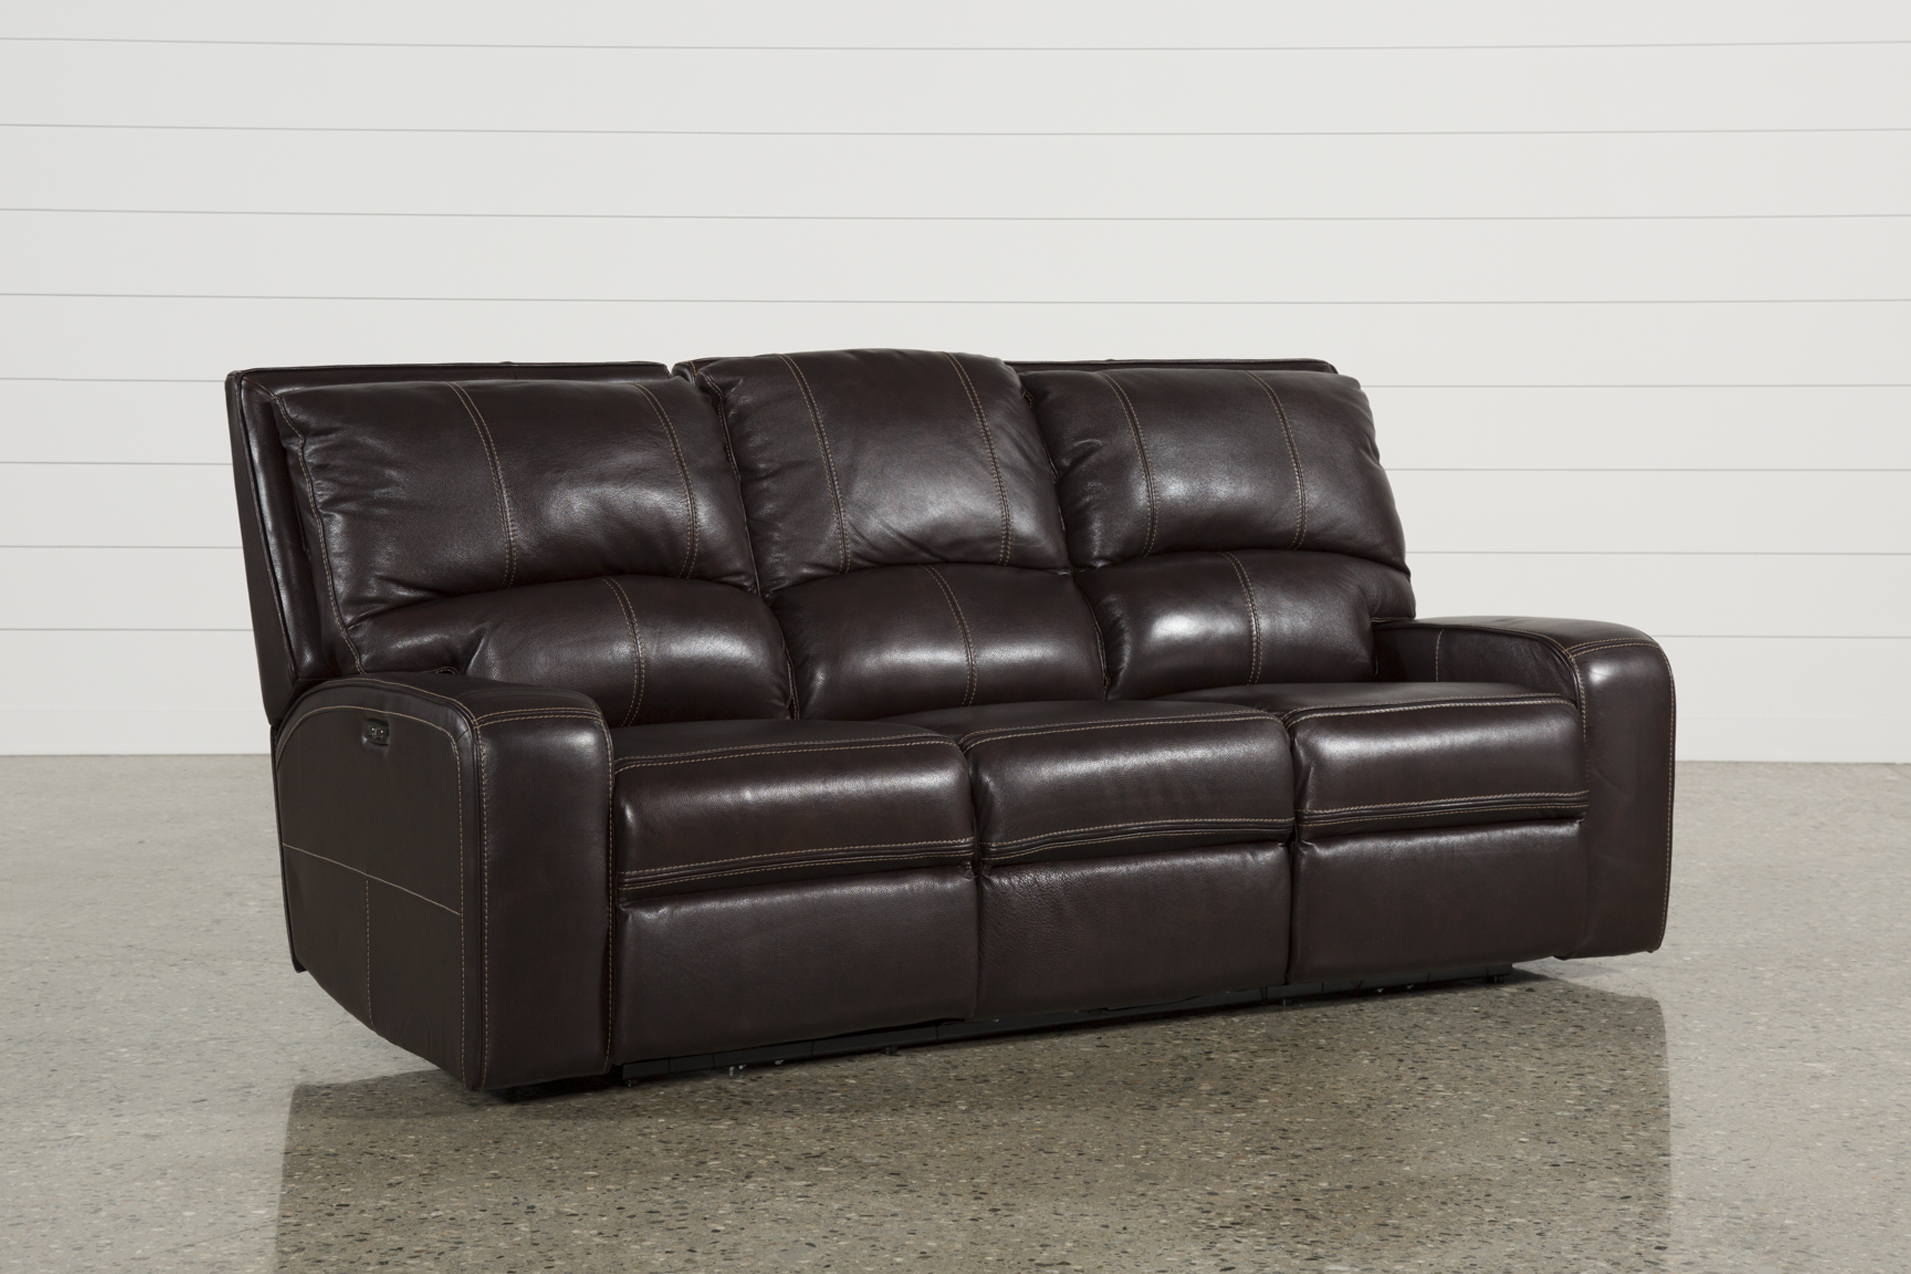 Clyde Dark Brown Leather Power Reclining Sofa W/Power Headrest U0026amp; Usb  (Qty: 1) Has Been Successfully Added To Your Cart.